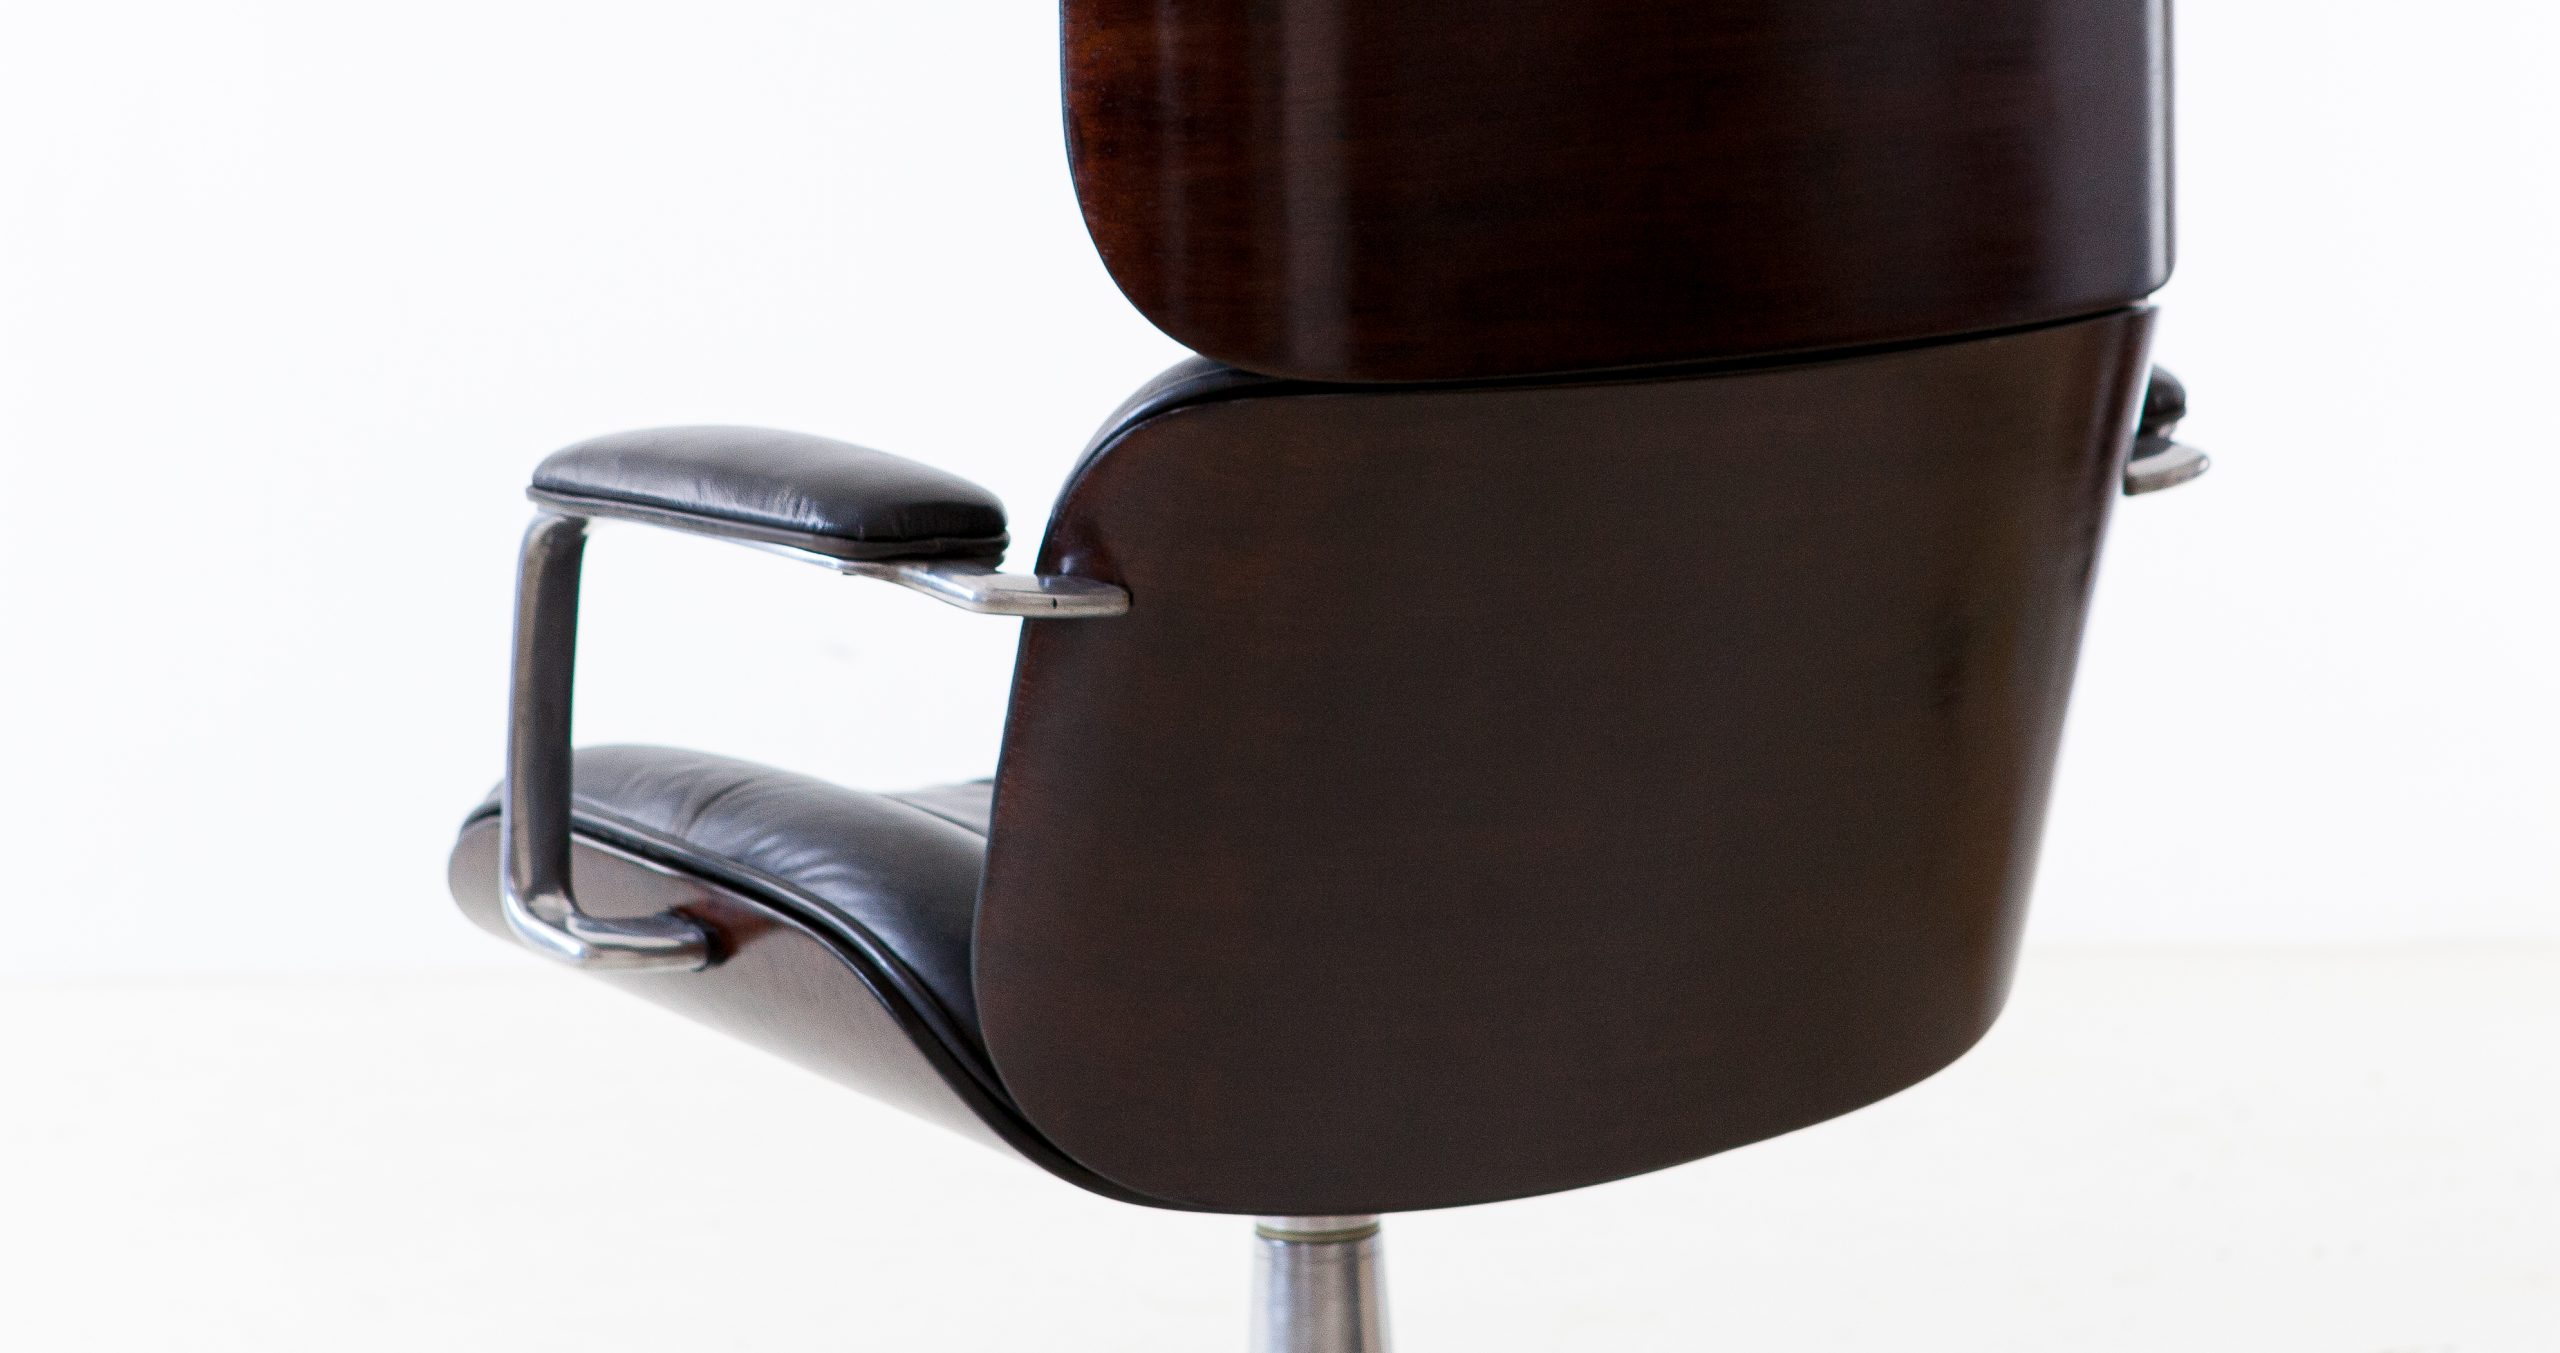 1950s-executive-desk-chair-by-Ico-Parisi-for-M.i.M.-9-SE332